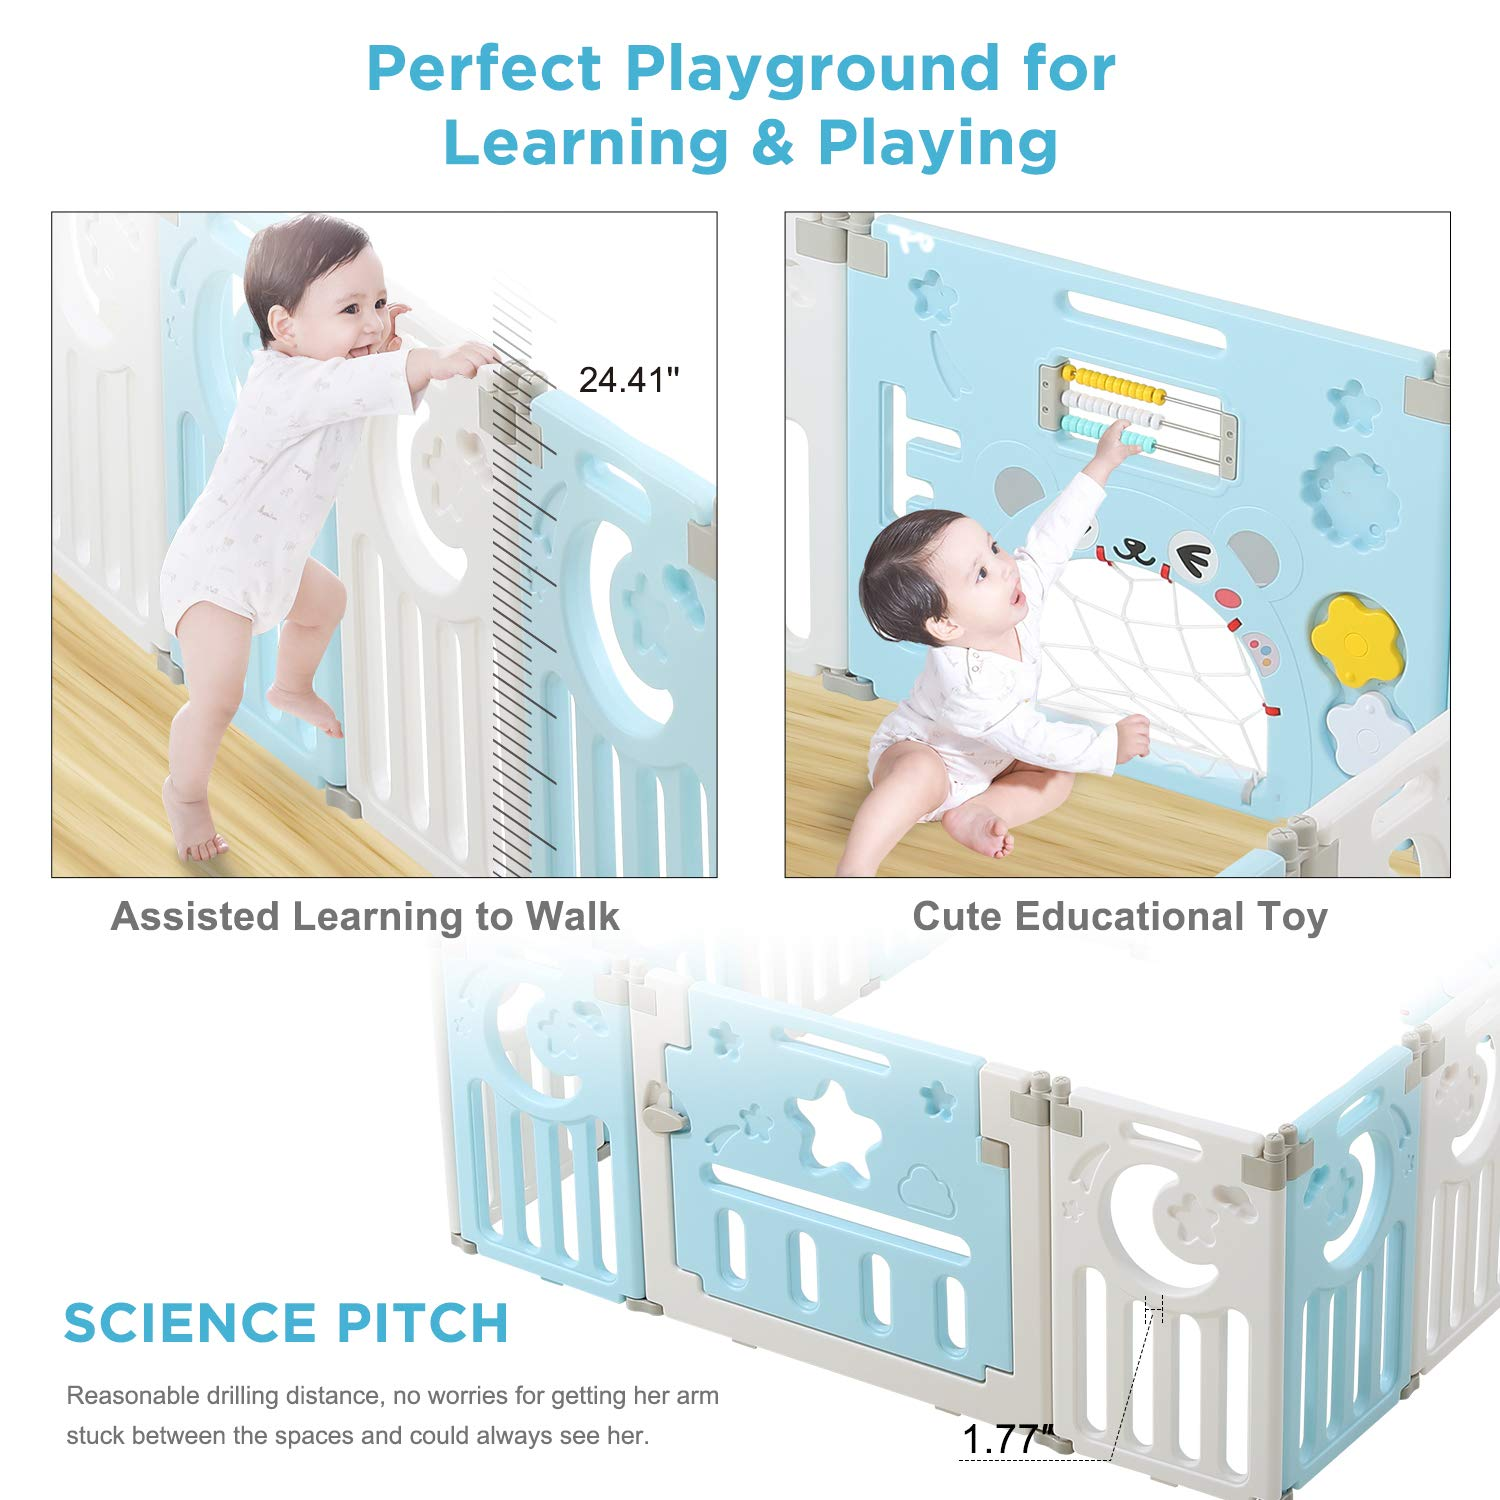 Dripex Upgrade 14-Panel Foldable Kids Activity Centre Safety Play Yard Home Indoor Outdoor Baby Fence Play Pen NO Gaps with Gate for Baby Boys Girls Toddlers Baby Playpen 14 Panel - Blue + White